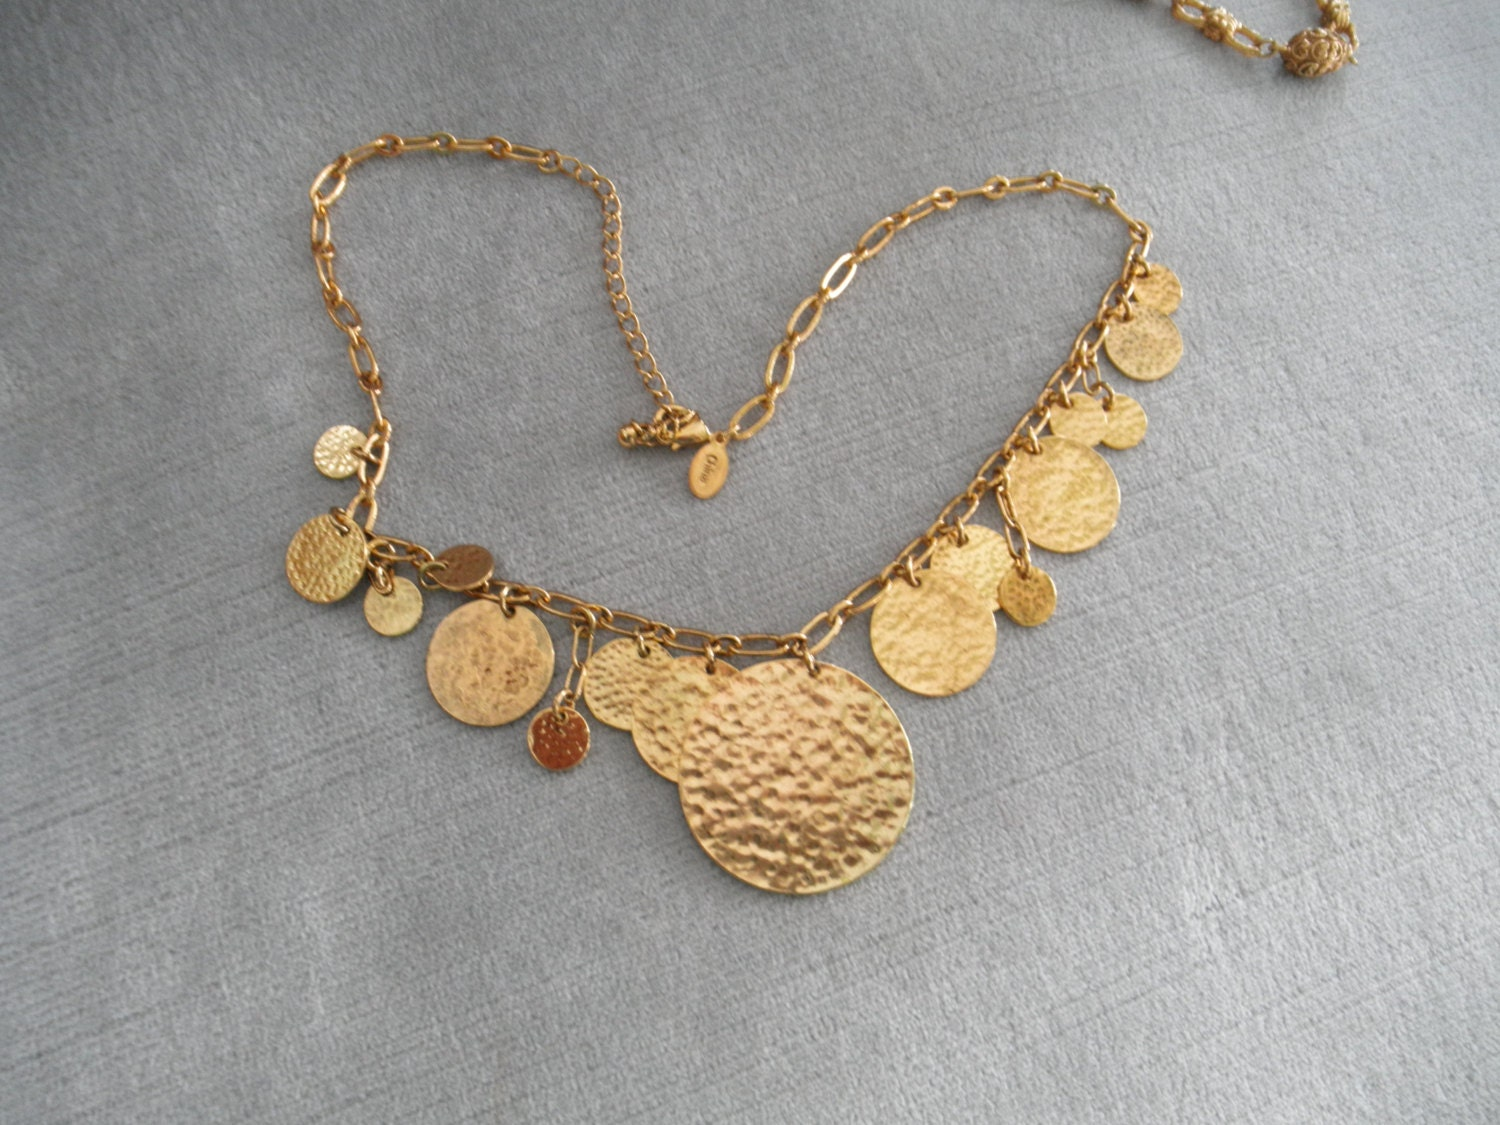 Vintage joan rivers coin necklace for Joan rivers jewelry necklaces